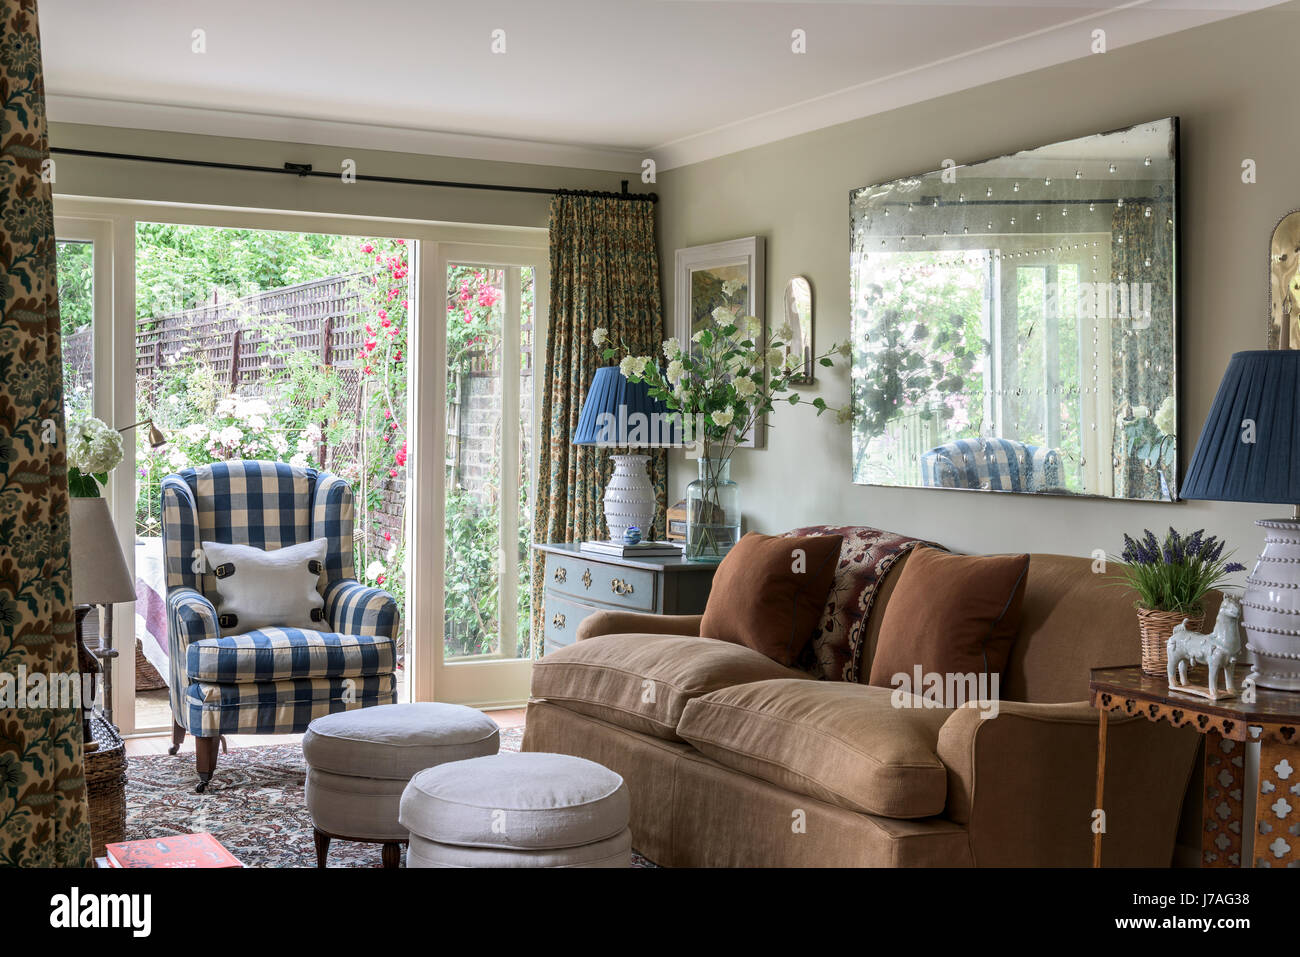 Wingback Chair Upholstered In Colefax U0026 Fowler Eaton Check In Sitting Room  With Lawson Wood Sofa Upholstered In Linen From Rogers U0026 Goffigon